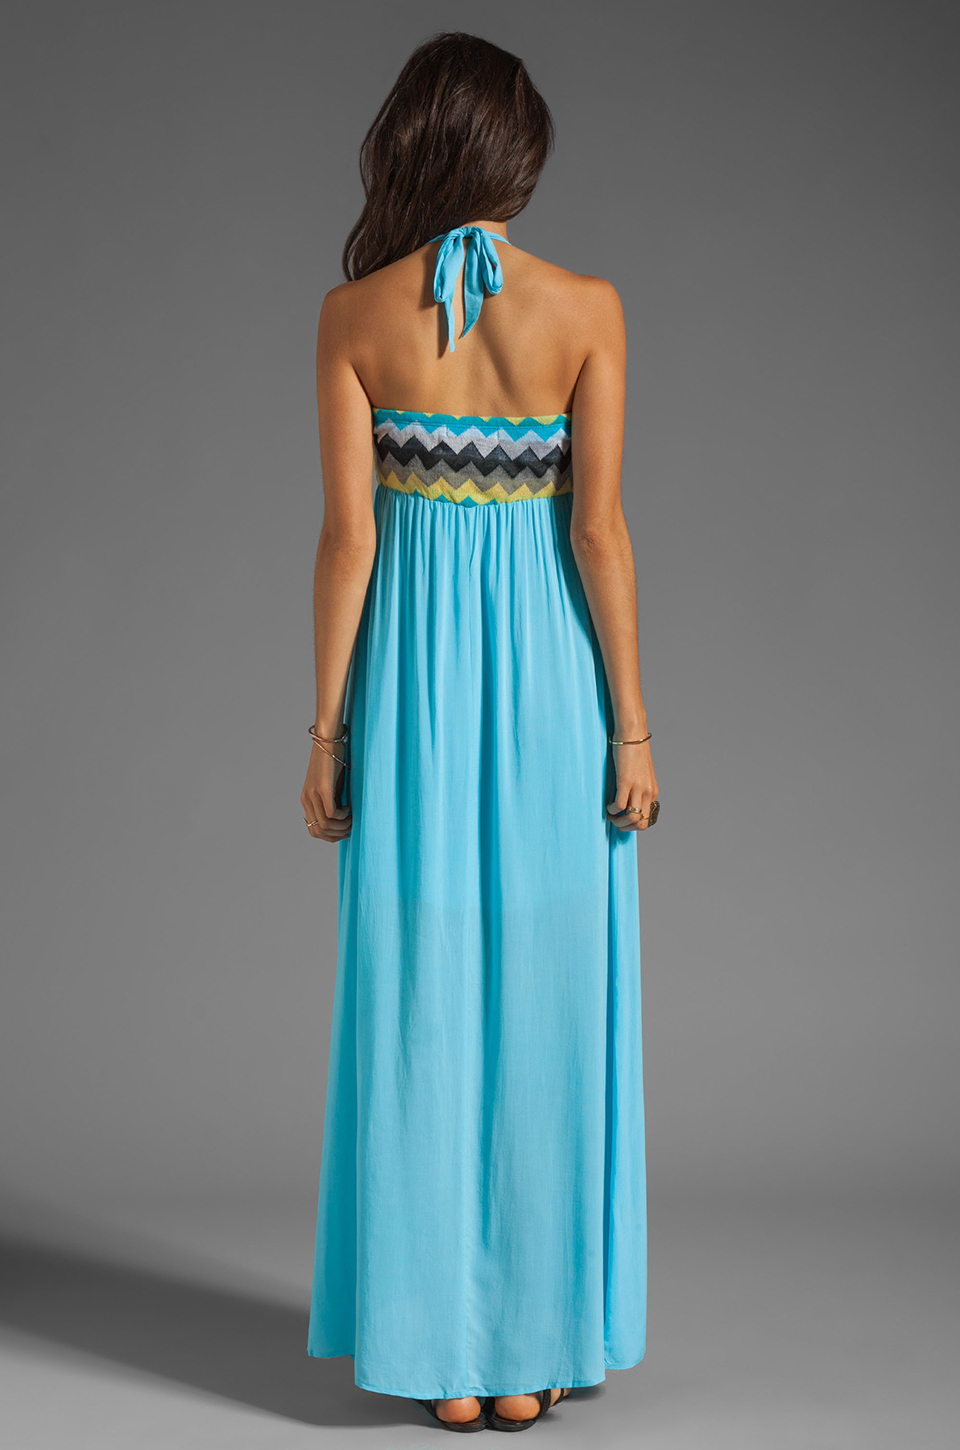 WOODLEIGH Keaton Maxi in Turquoise